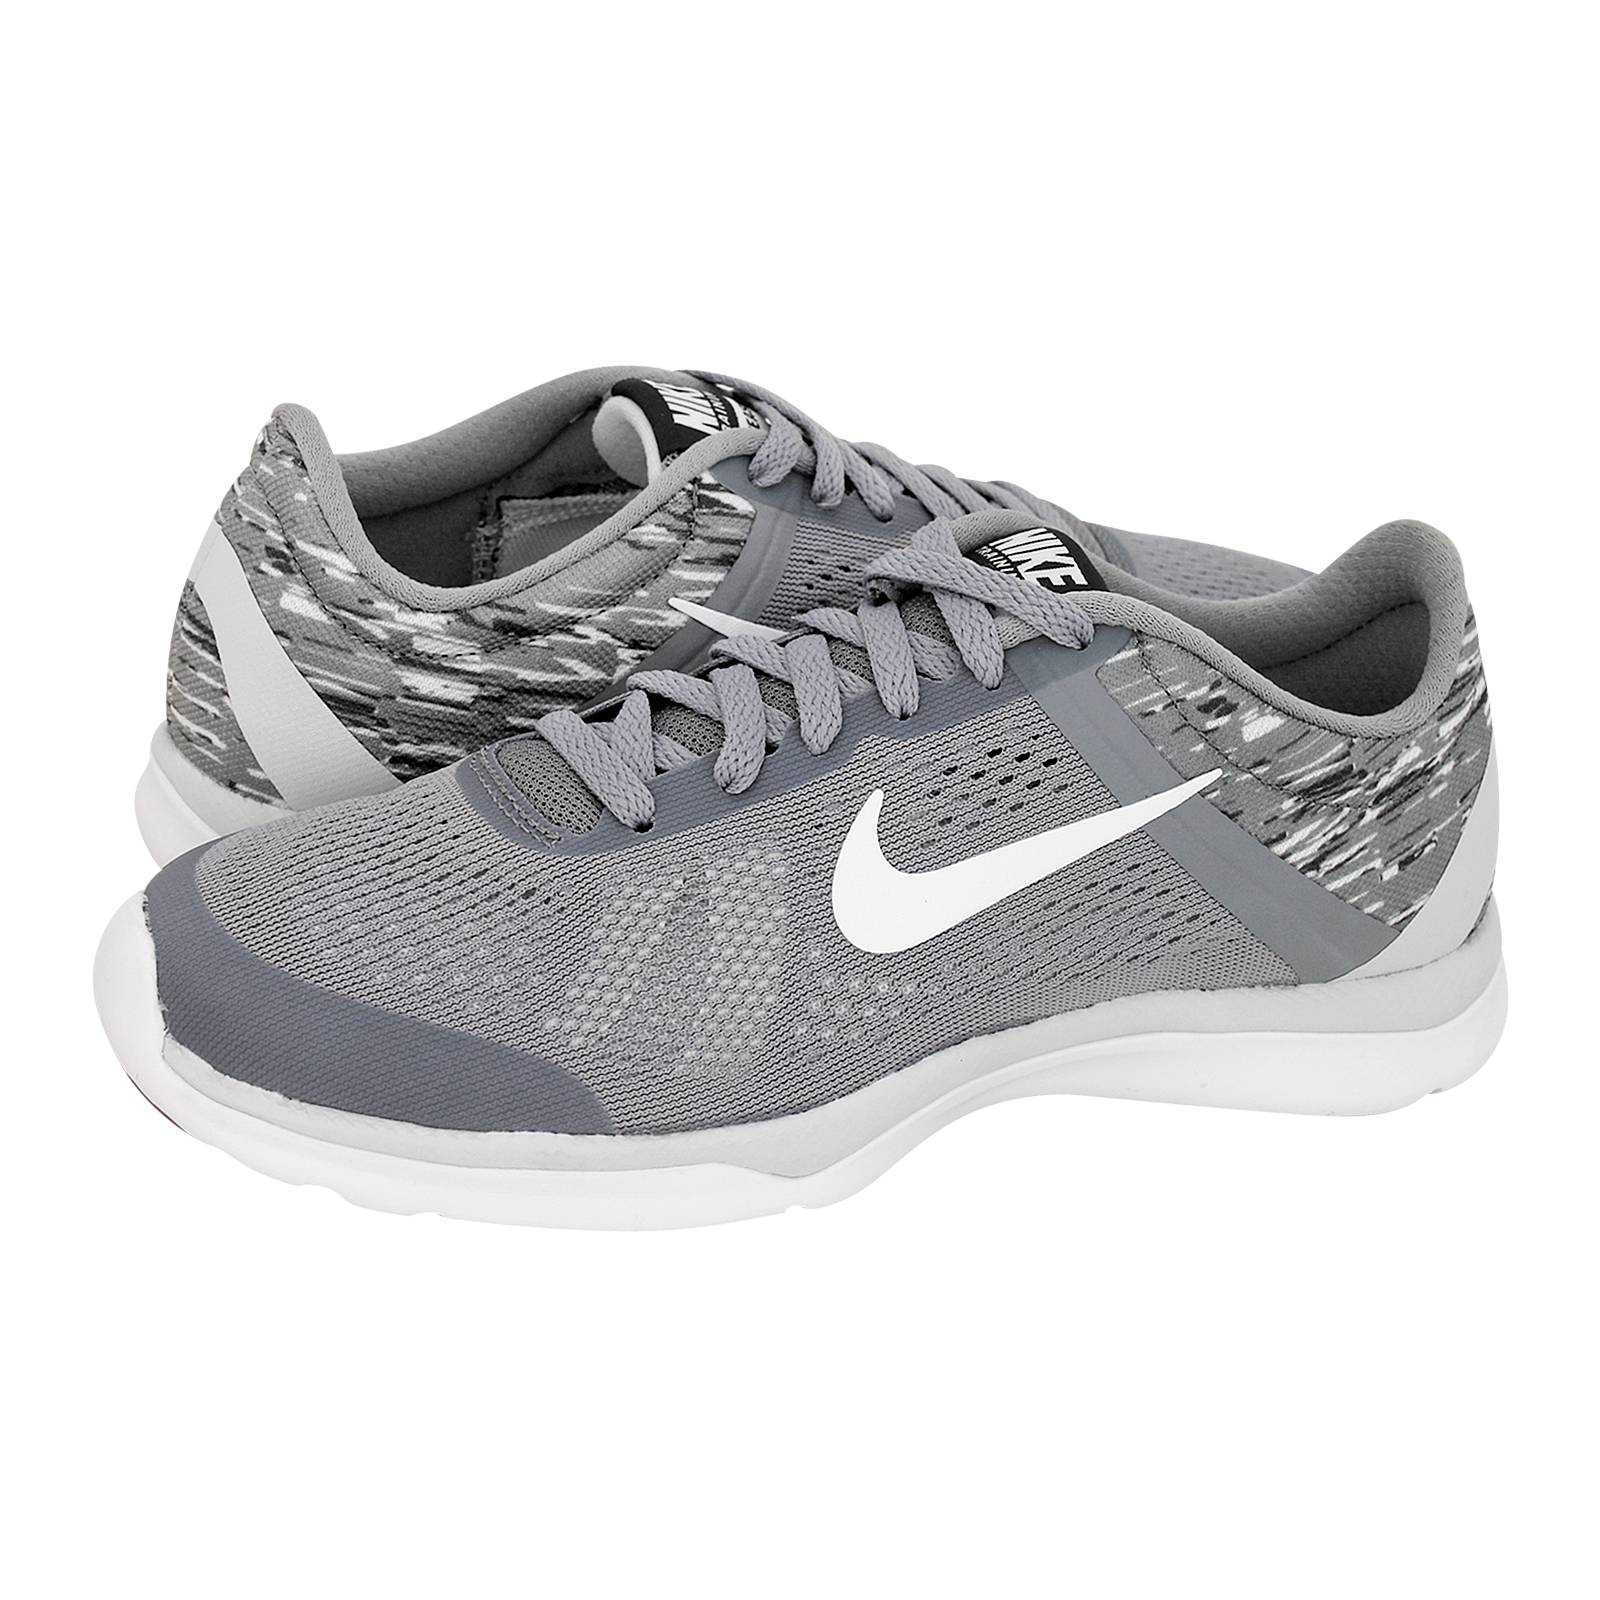 In Season TR 5 Print - Nike Women s athletic shoes made of fabric ... 82f9c8b10